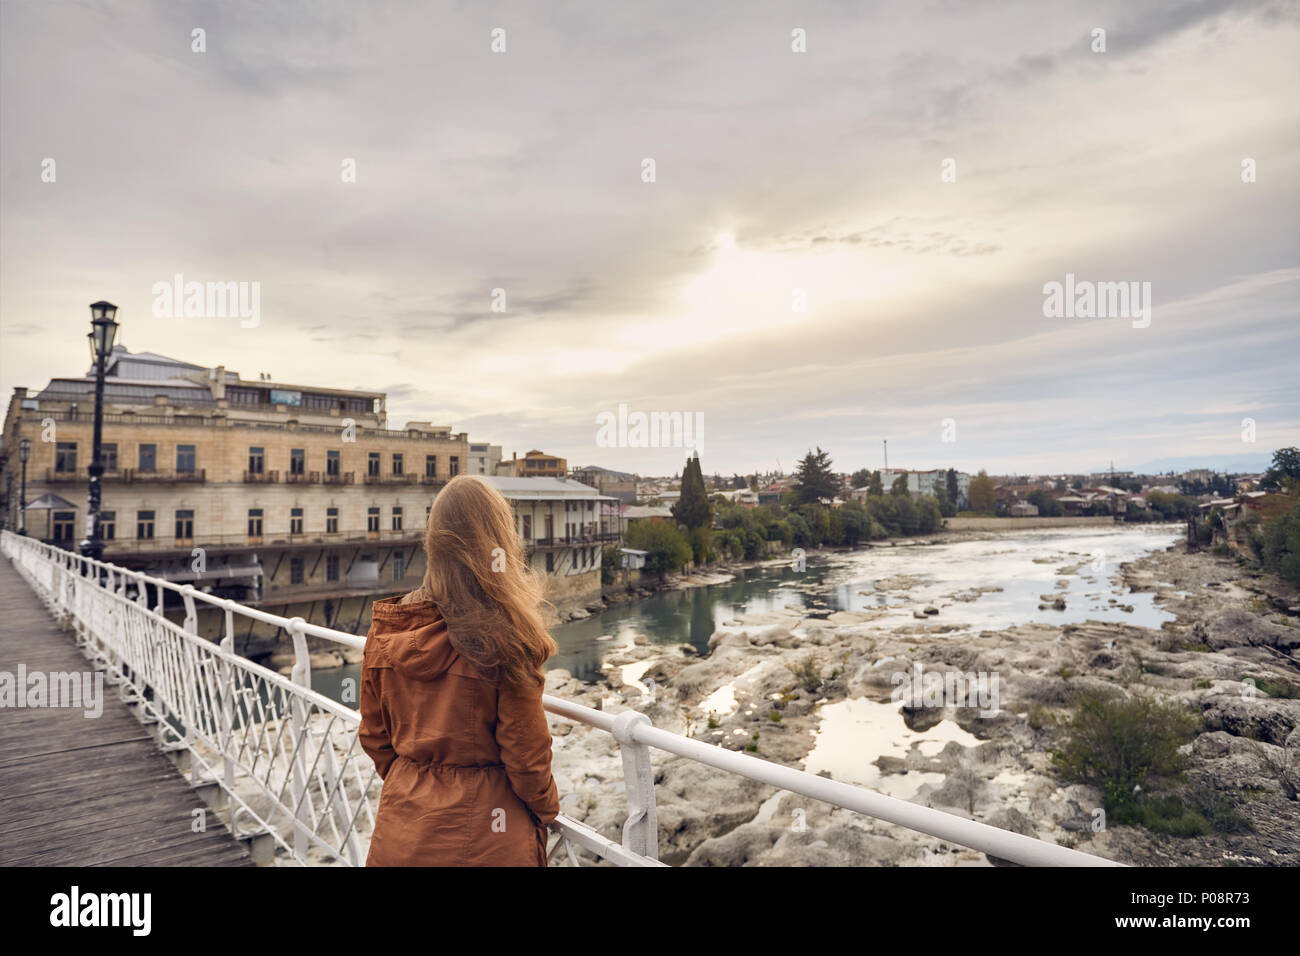 Lonely woman with long hair on the bridge looking at sunrise in Kutaisi, Georgia Stock Photo